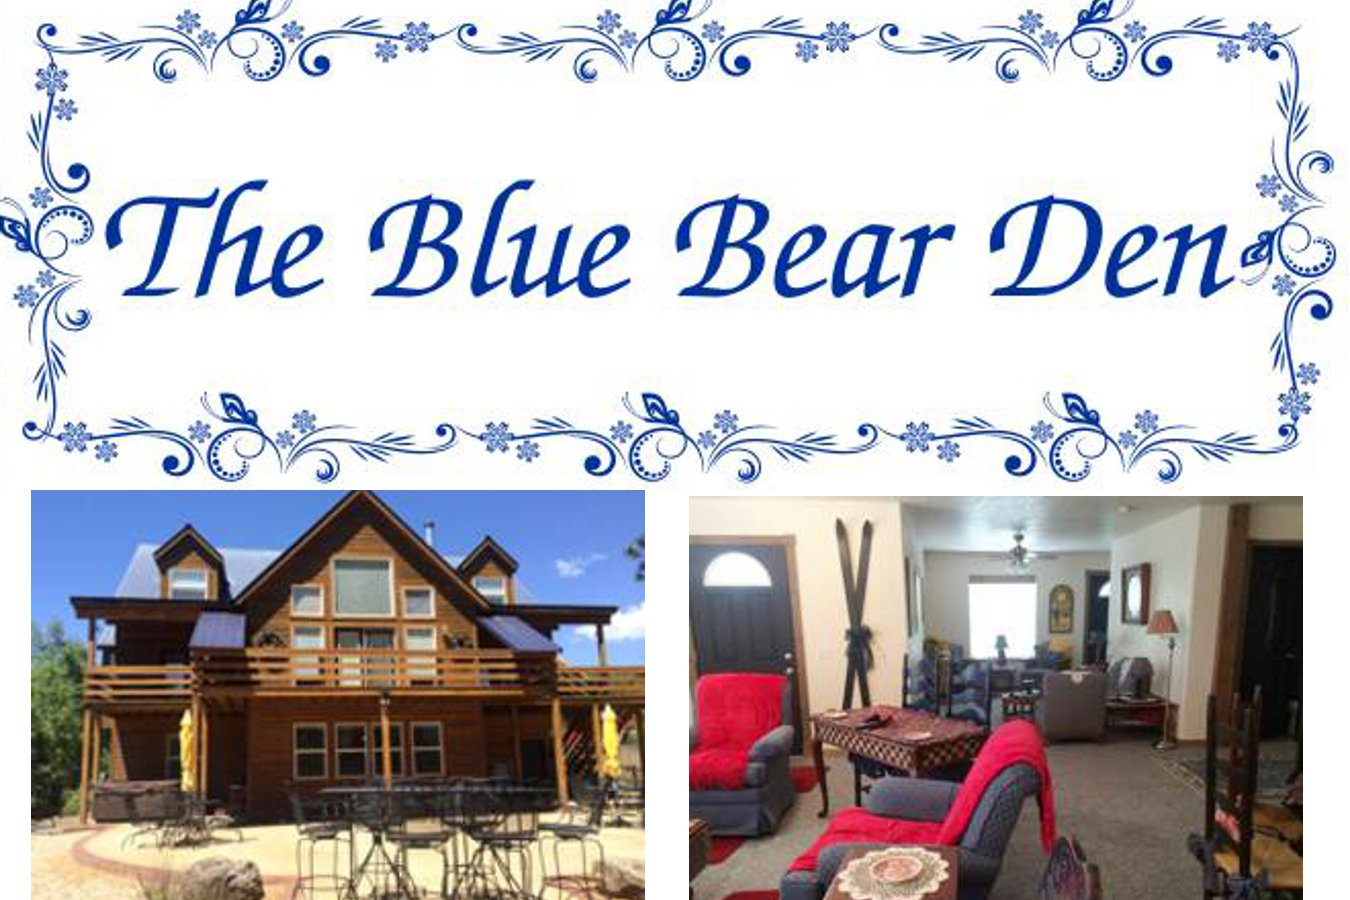 The Blue Bear Den